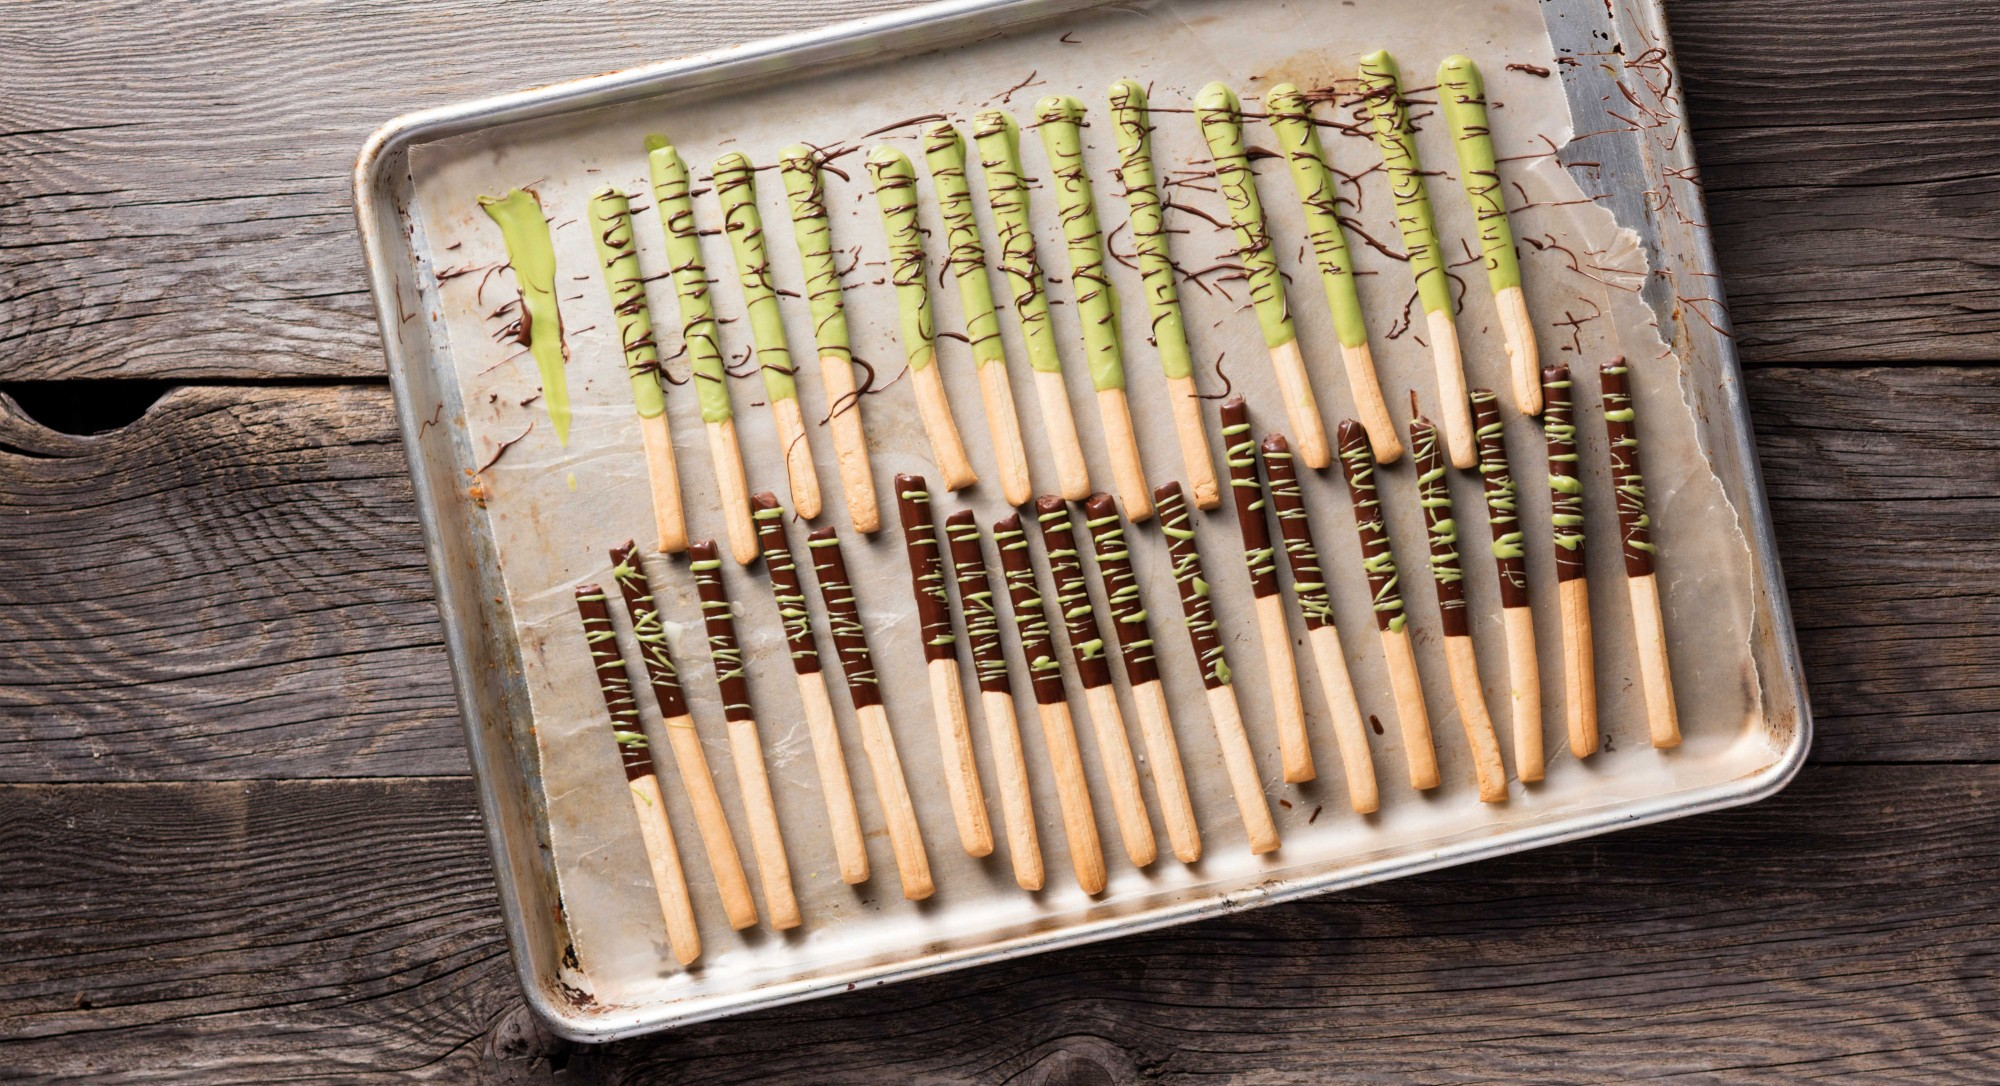 Matcha and Chocolate Coated Snack Stick Recipe